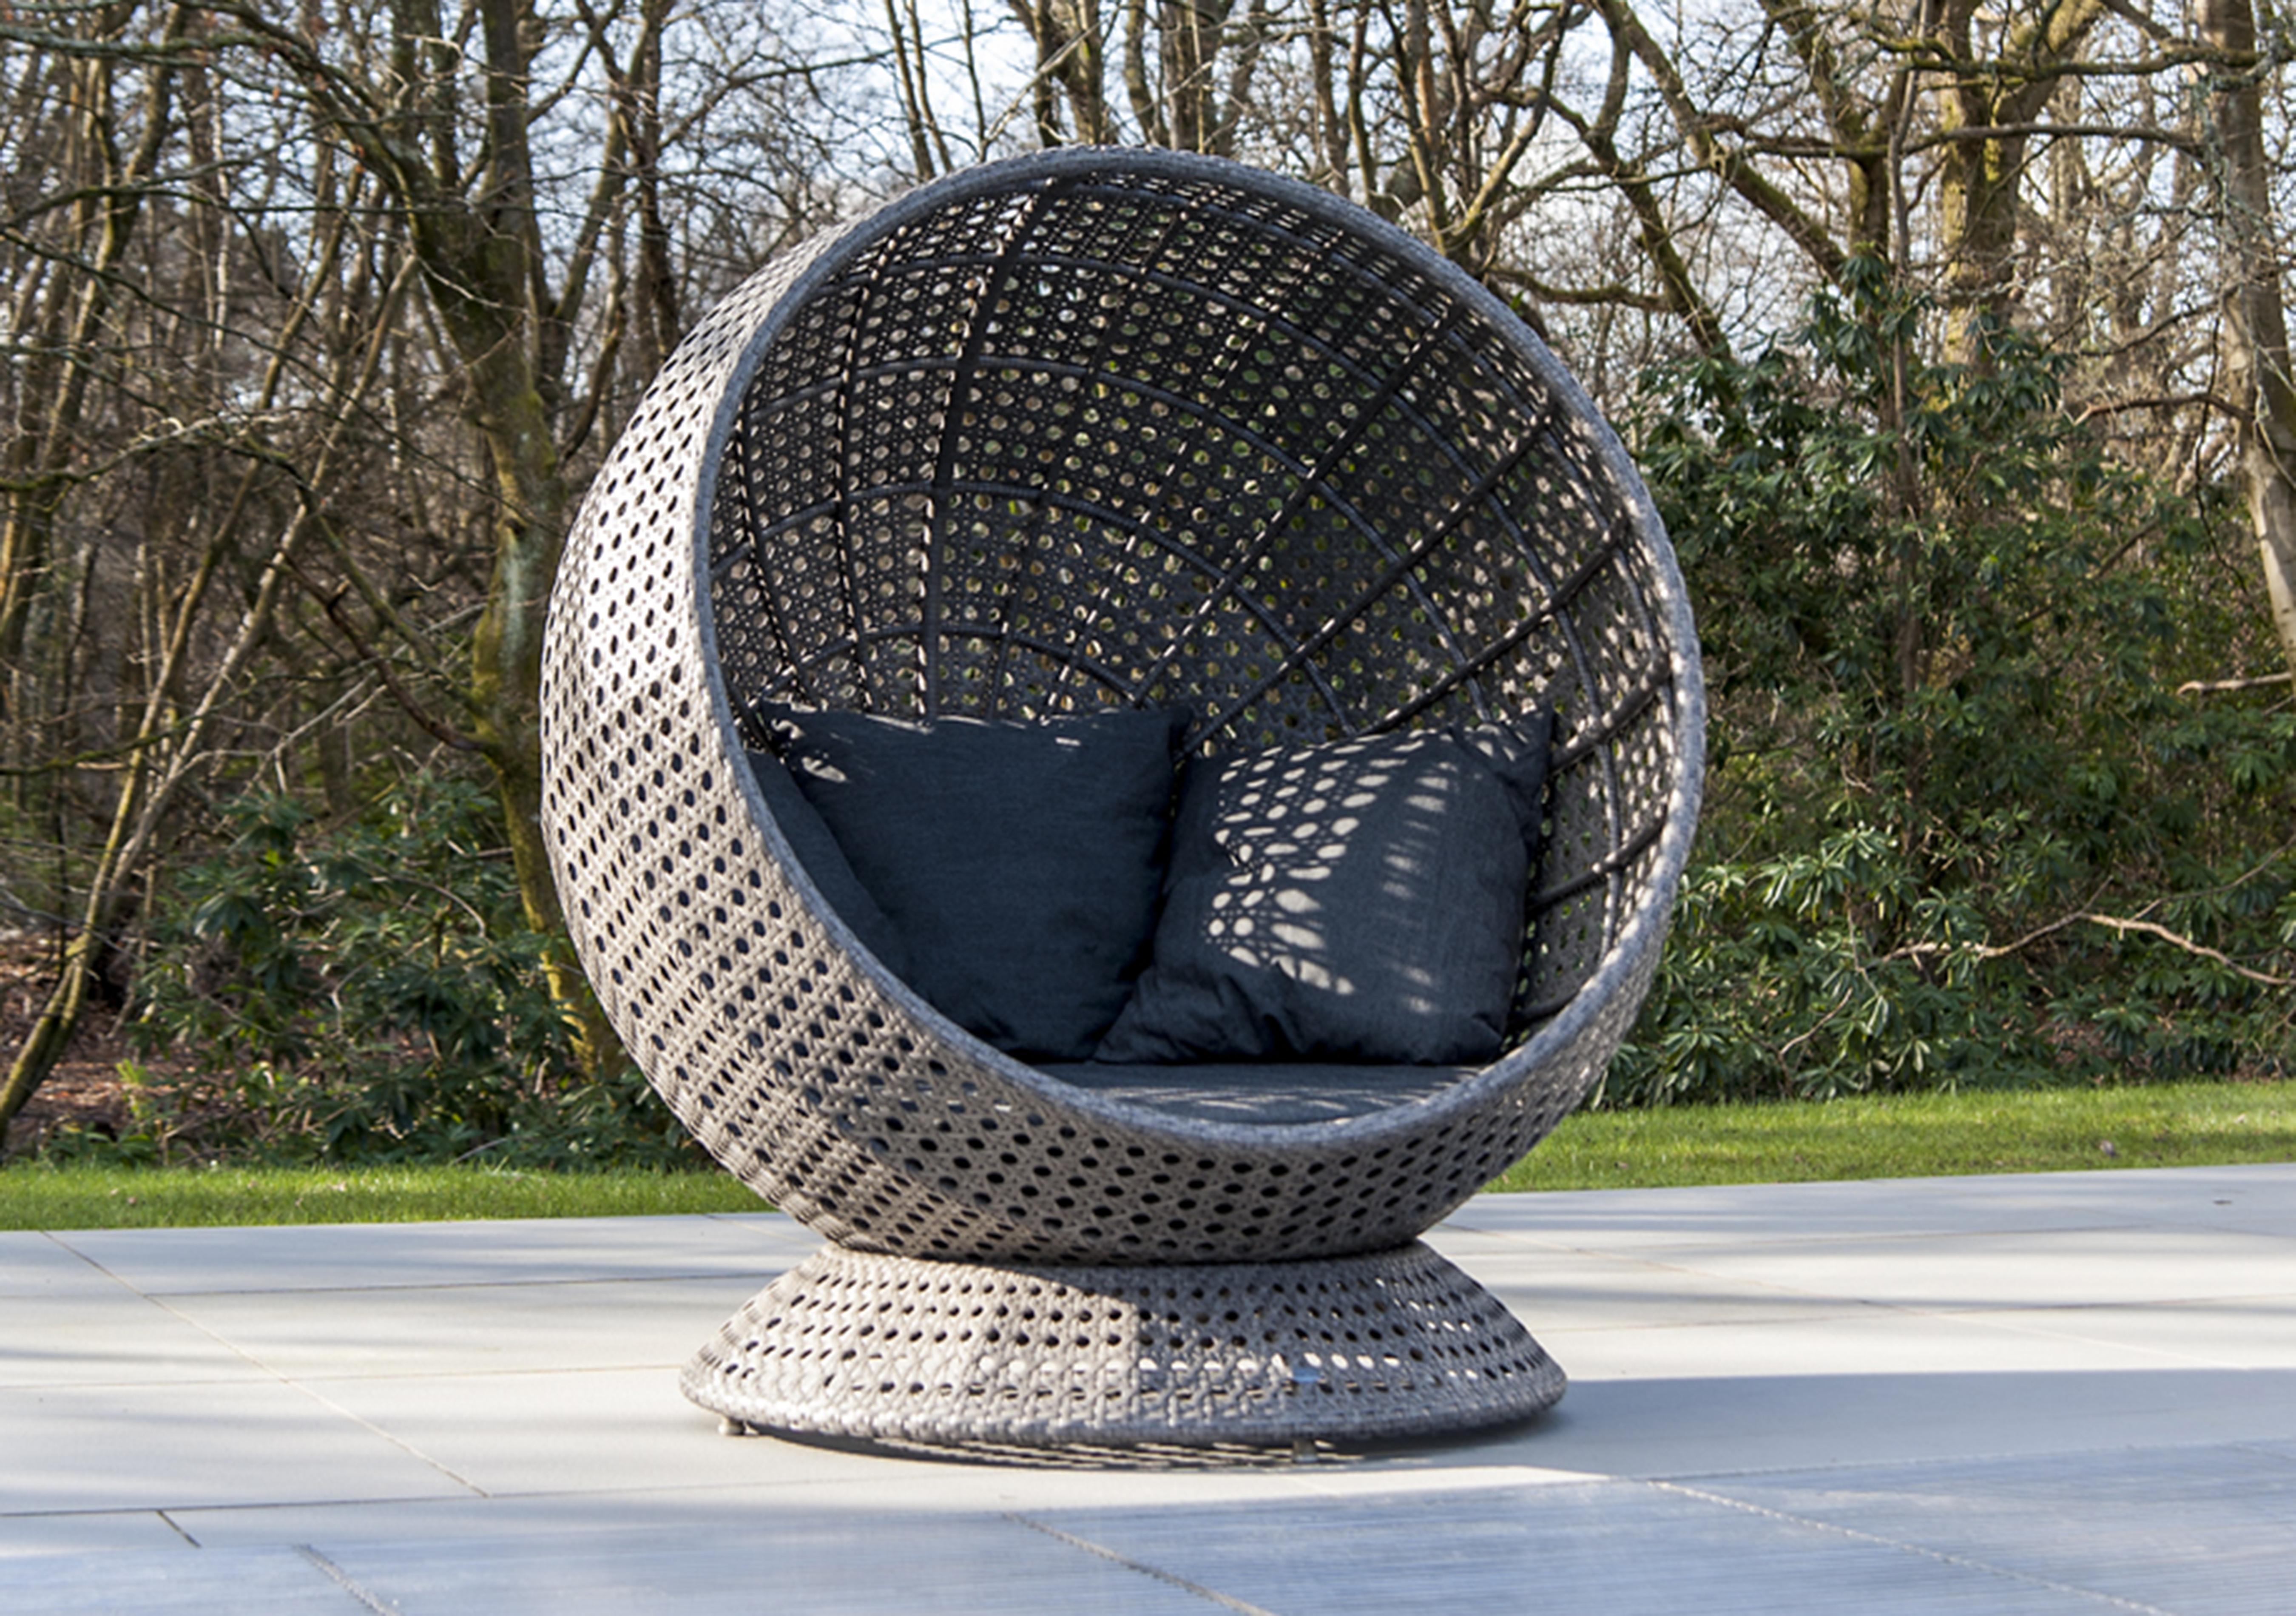 unique garden furniture pod collection in inspiration - Garden Furniture Pod